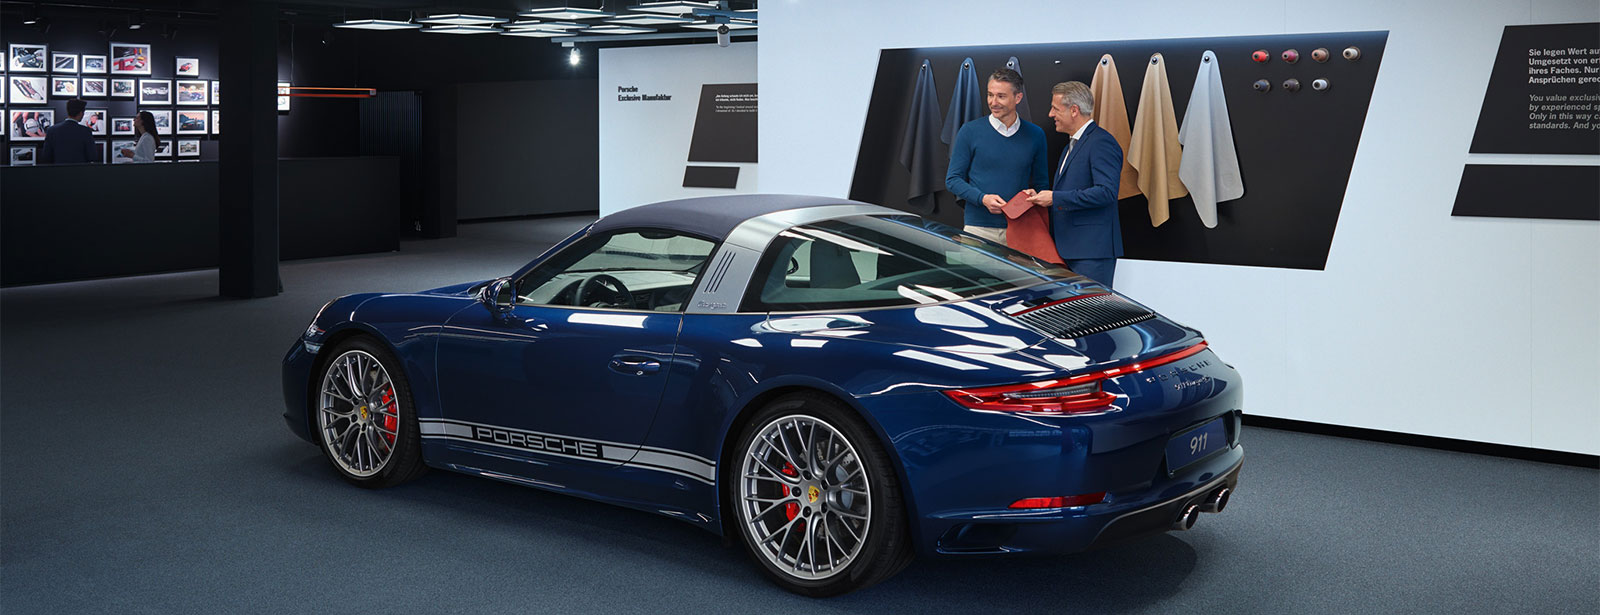 Porsche Exclusive Manufaktur Partner